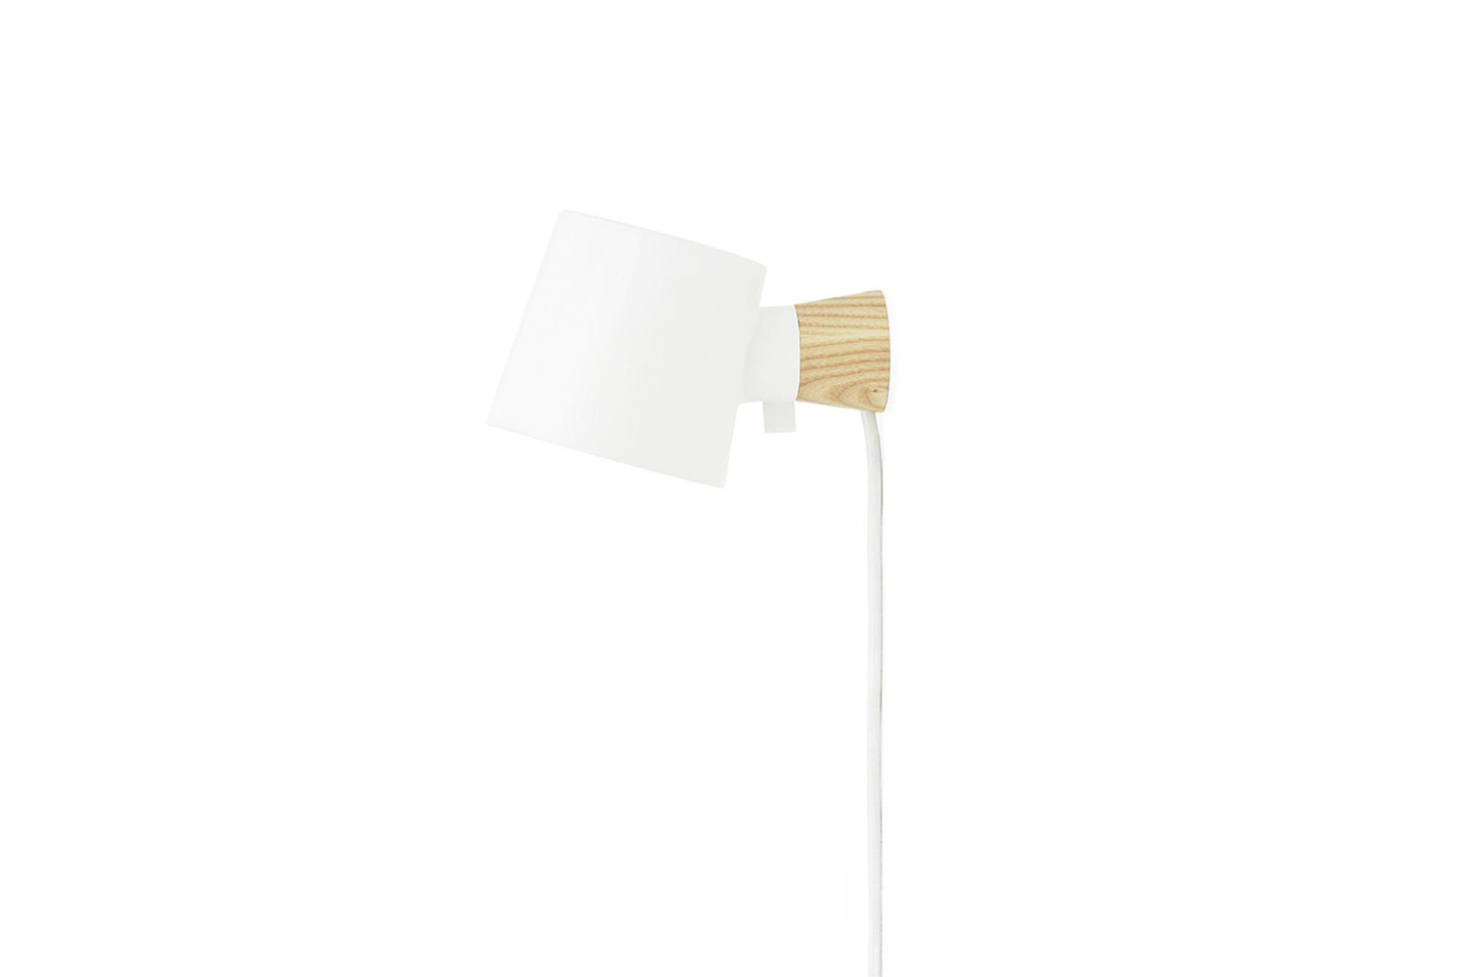 The Normann Copenhagen Rise Wall Lamp in White with an EU plug is $120 from Normann Copenhagen. It also comes in a range of colors from gray to green and yellow.